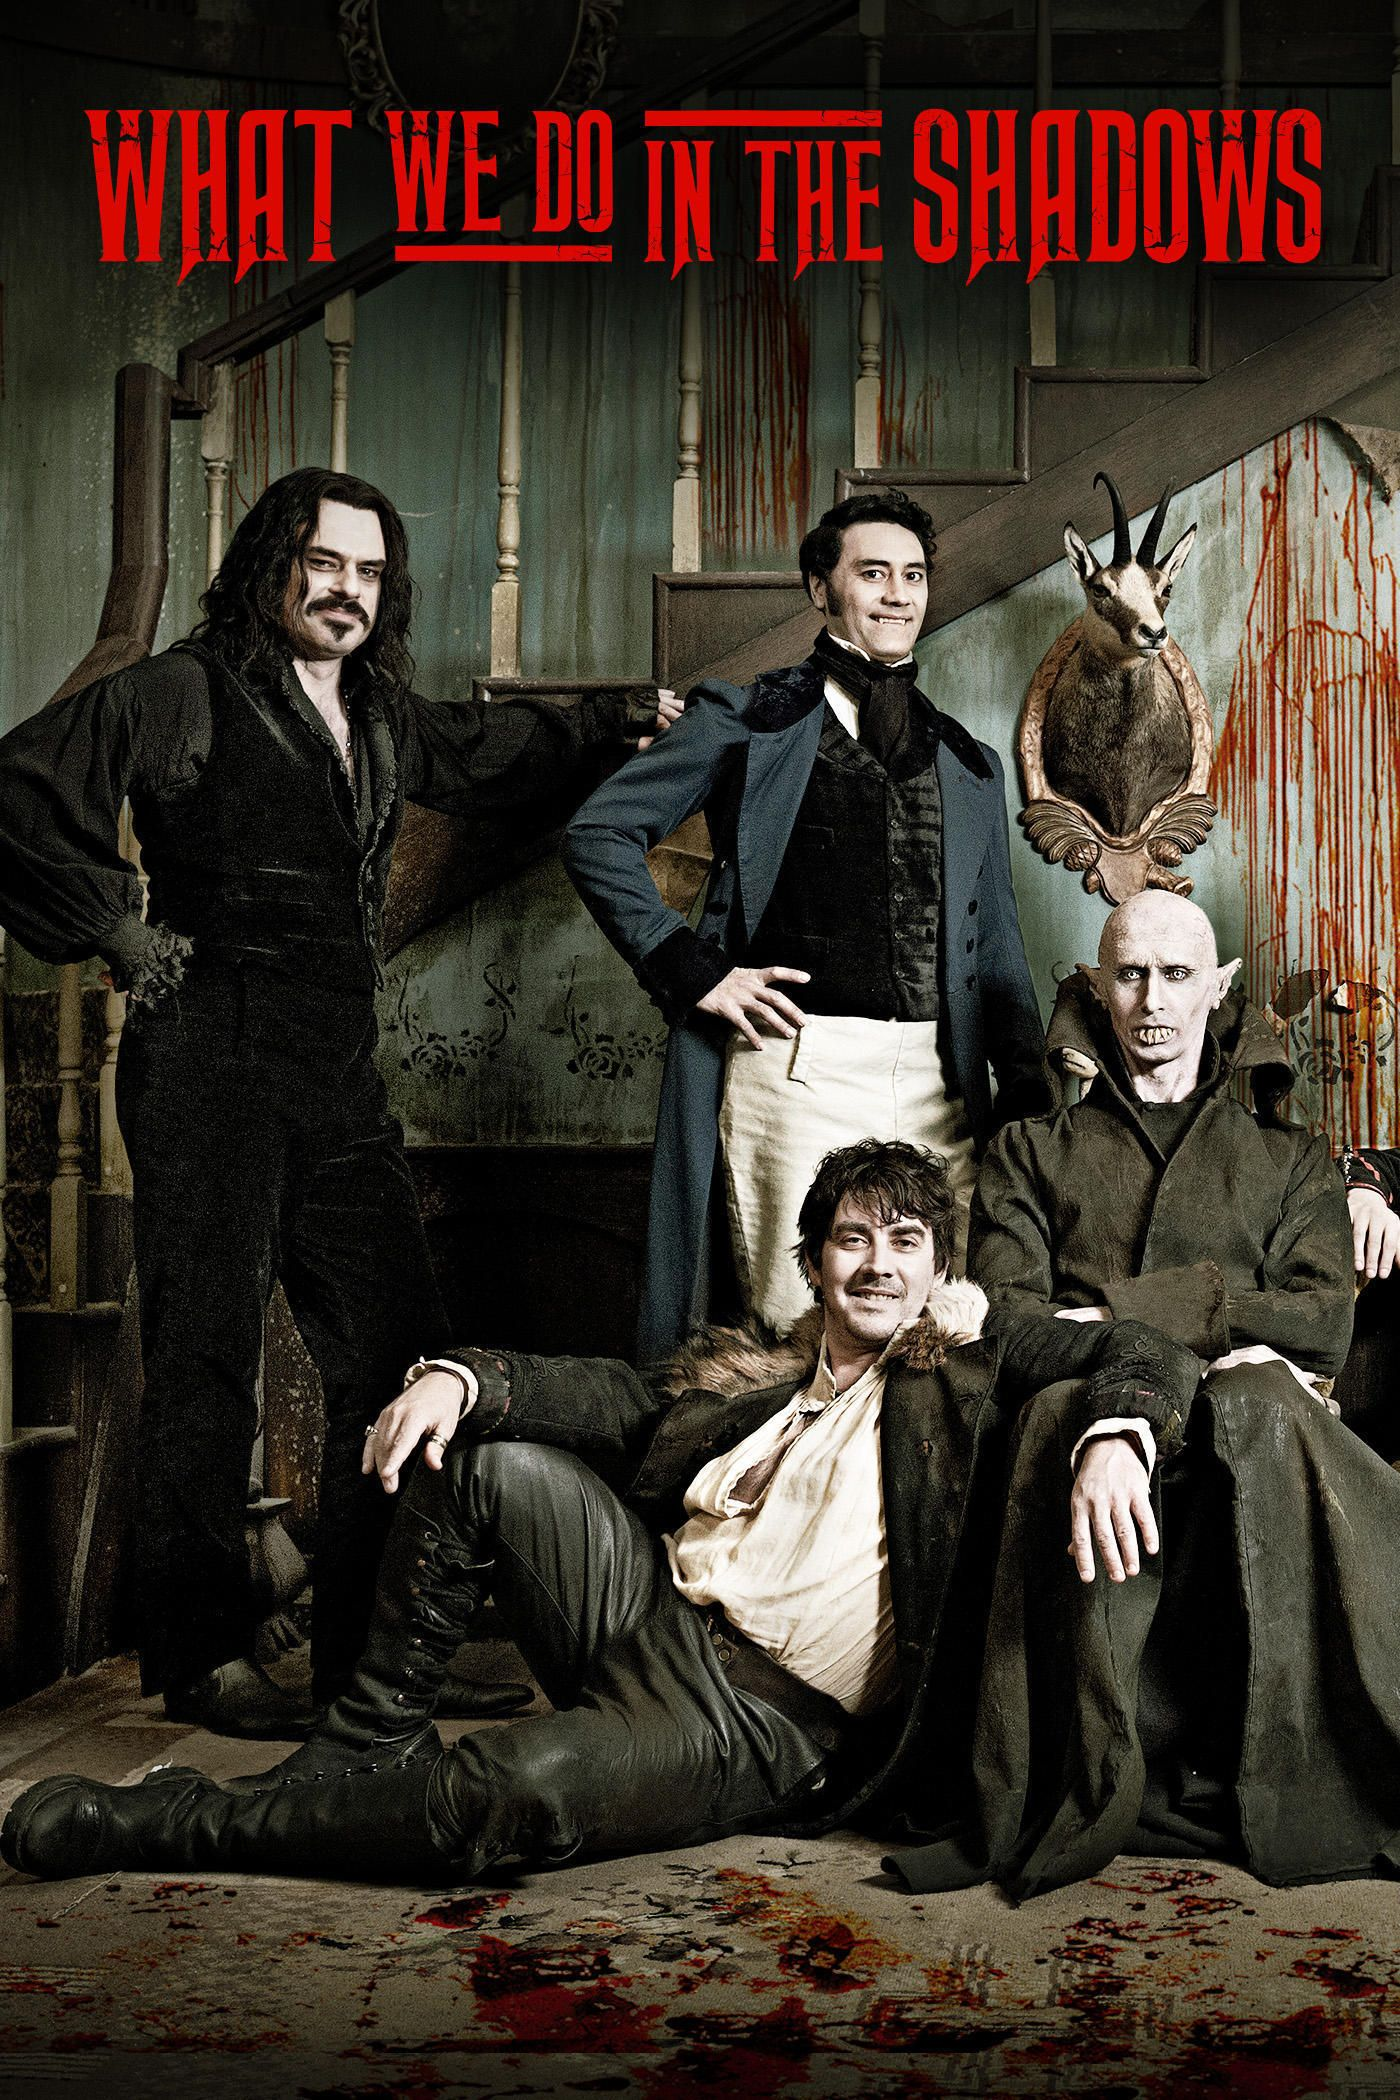 Drei Zimmer Küche Sarg Stream What We Do In The Shadows 2014 A Horror Mockumentary Film